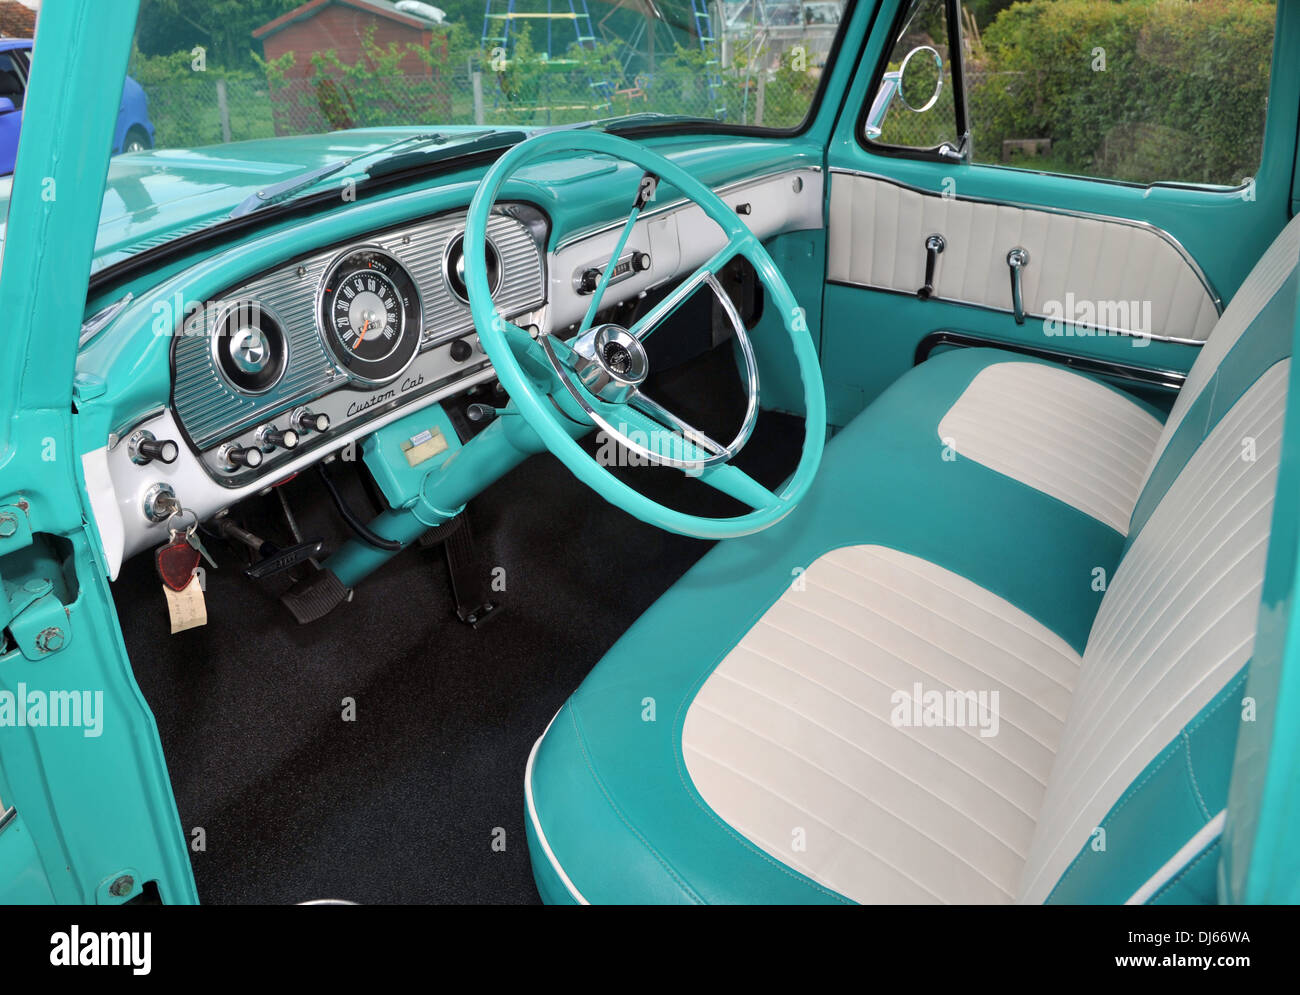 Ford F100 Stock Photos Images Alamy 1955 Truck Steering Wheels 1964 Classic American Pick Up Image